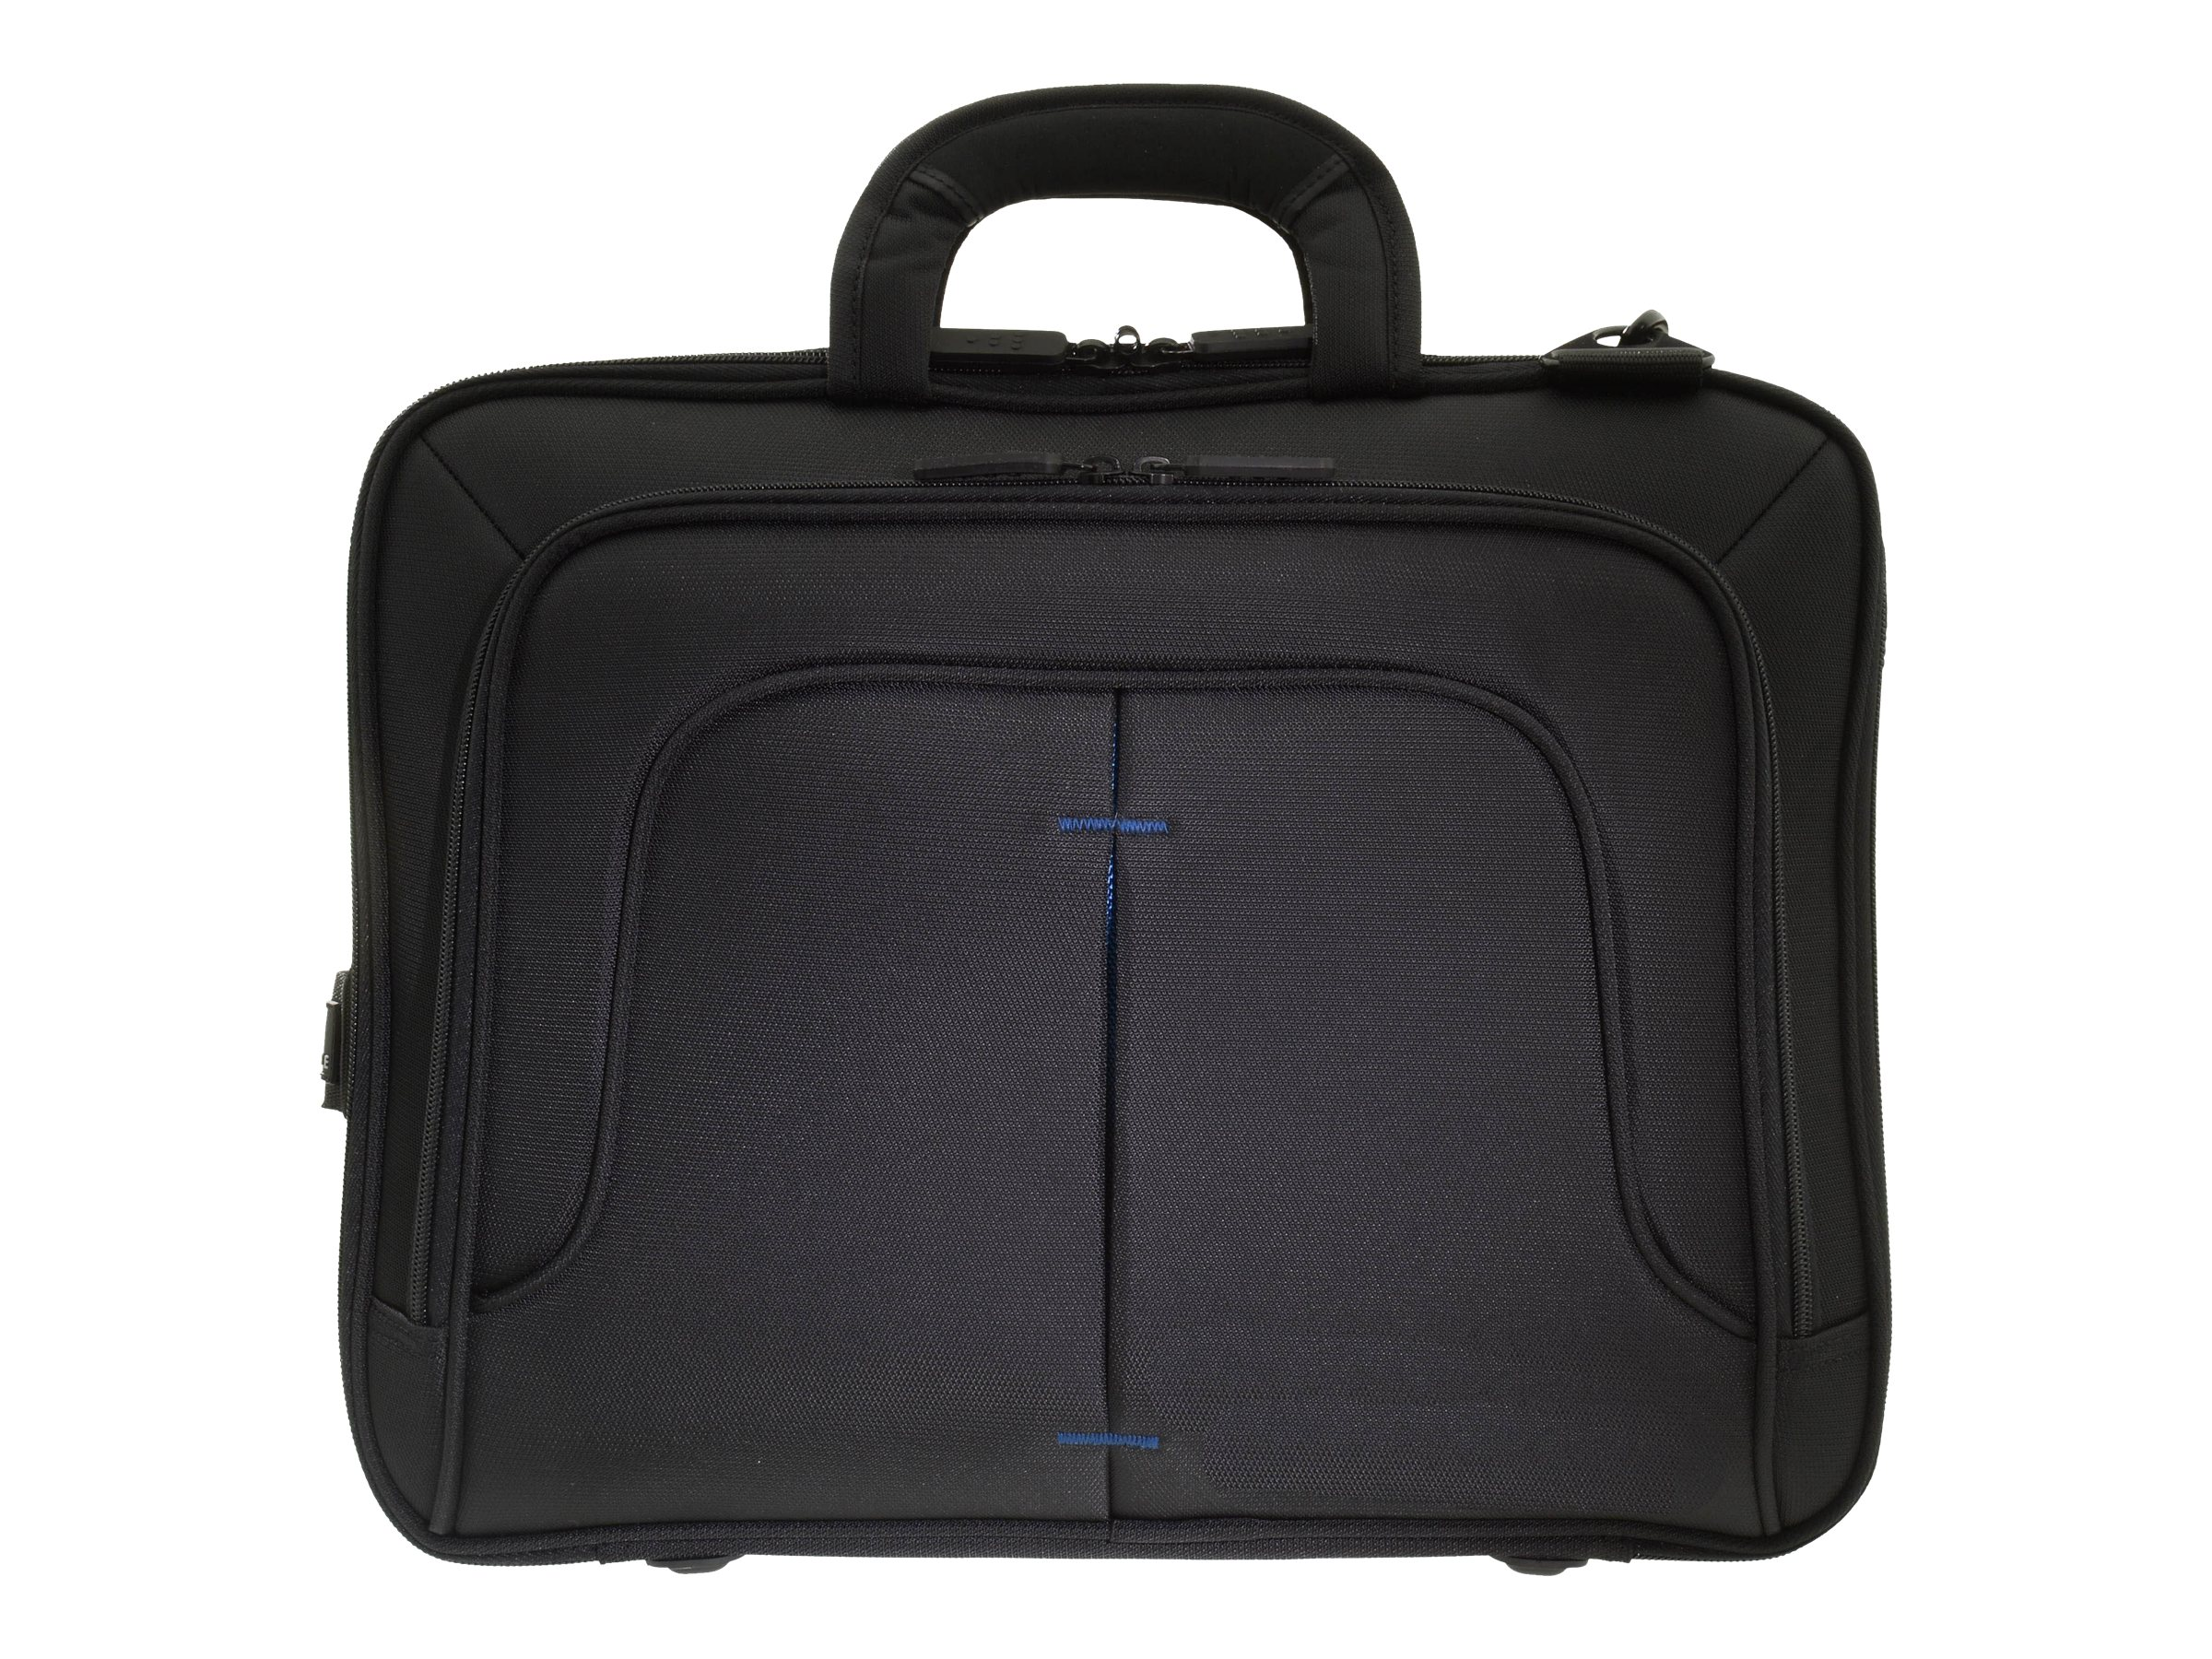 Eco Style Tech Pro Topload Case, Checkpoint Friendly, Blue, ETPR-BL15-CF, 17988650, Carrying Cases - Notebook